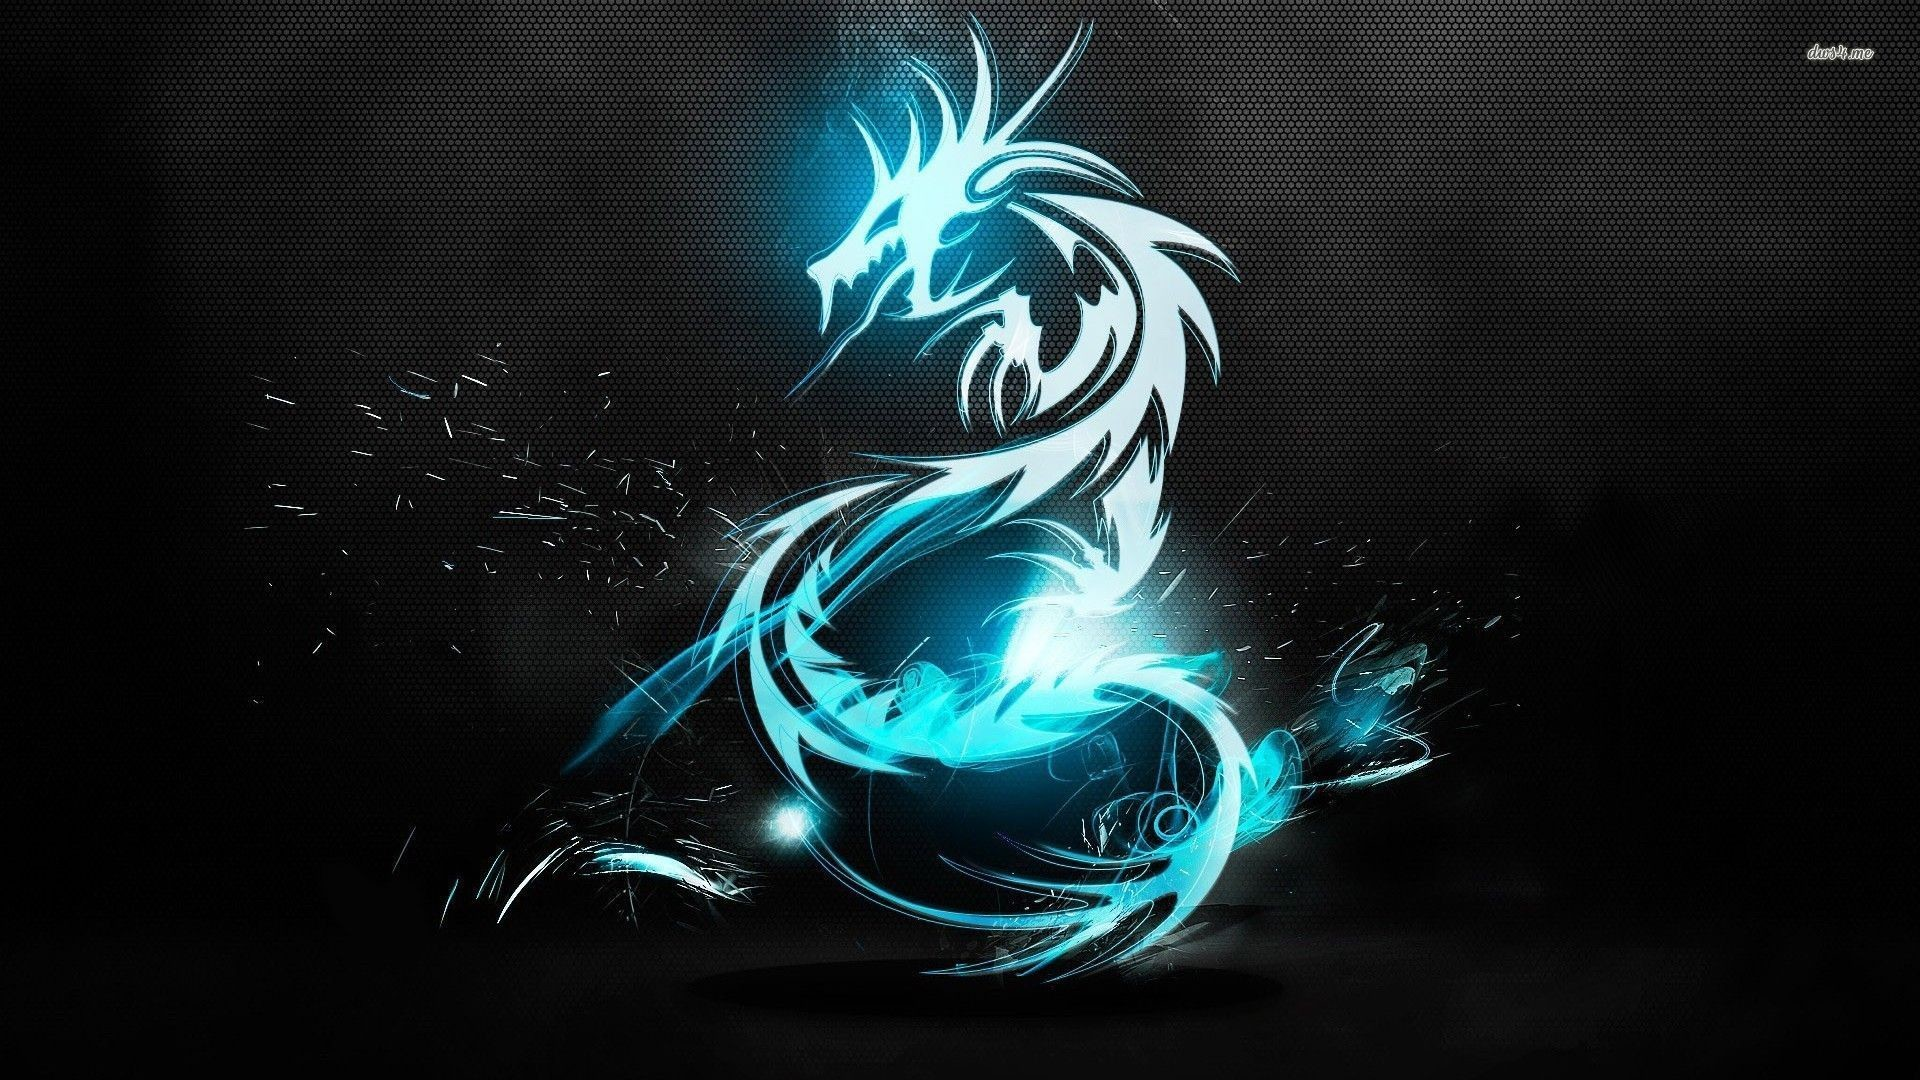 Hd Wallpaper 1920x1080 Black Blue: Blue Dragon Wallpaper HD (70+ Images